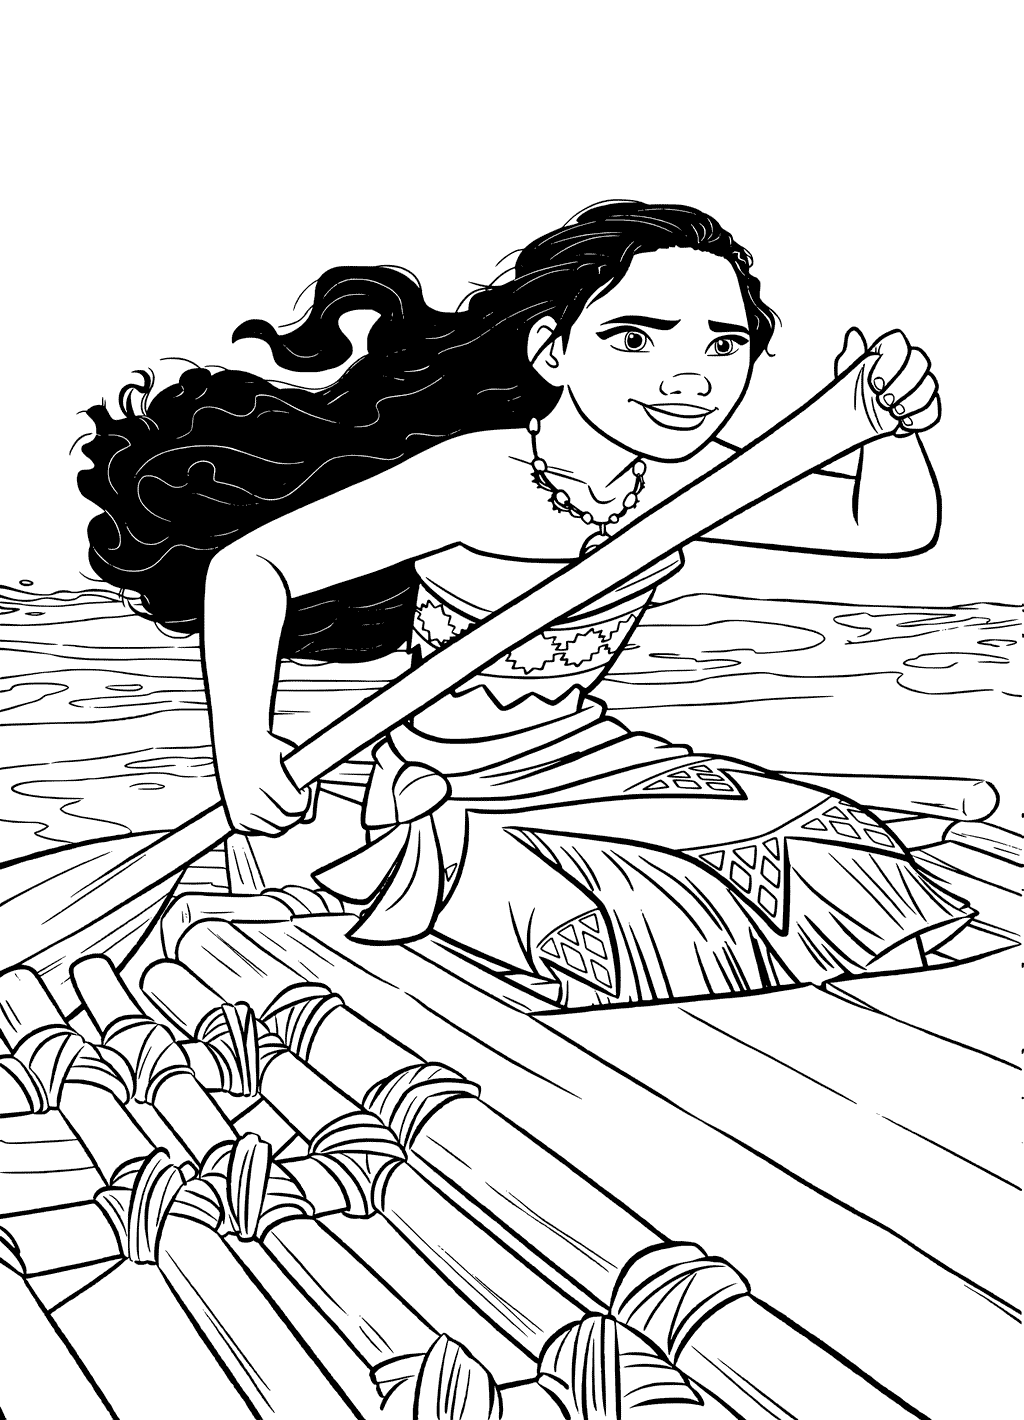 Top 10 Moana Coloring Pages Free Printables Fargelegging